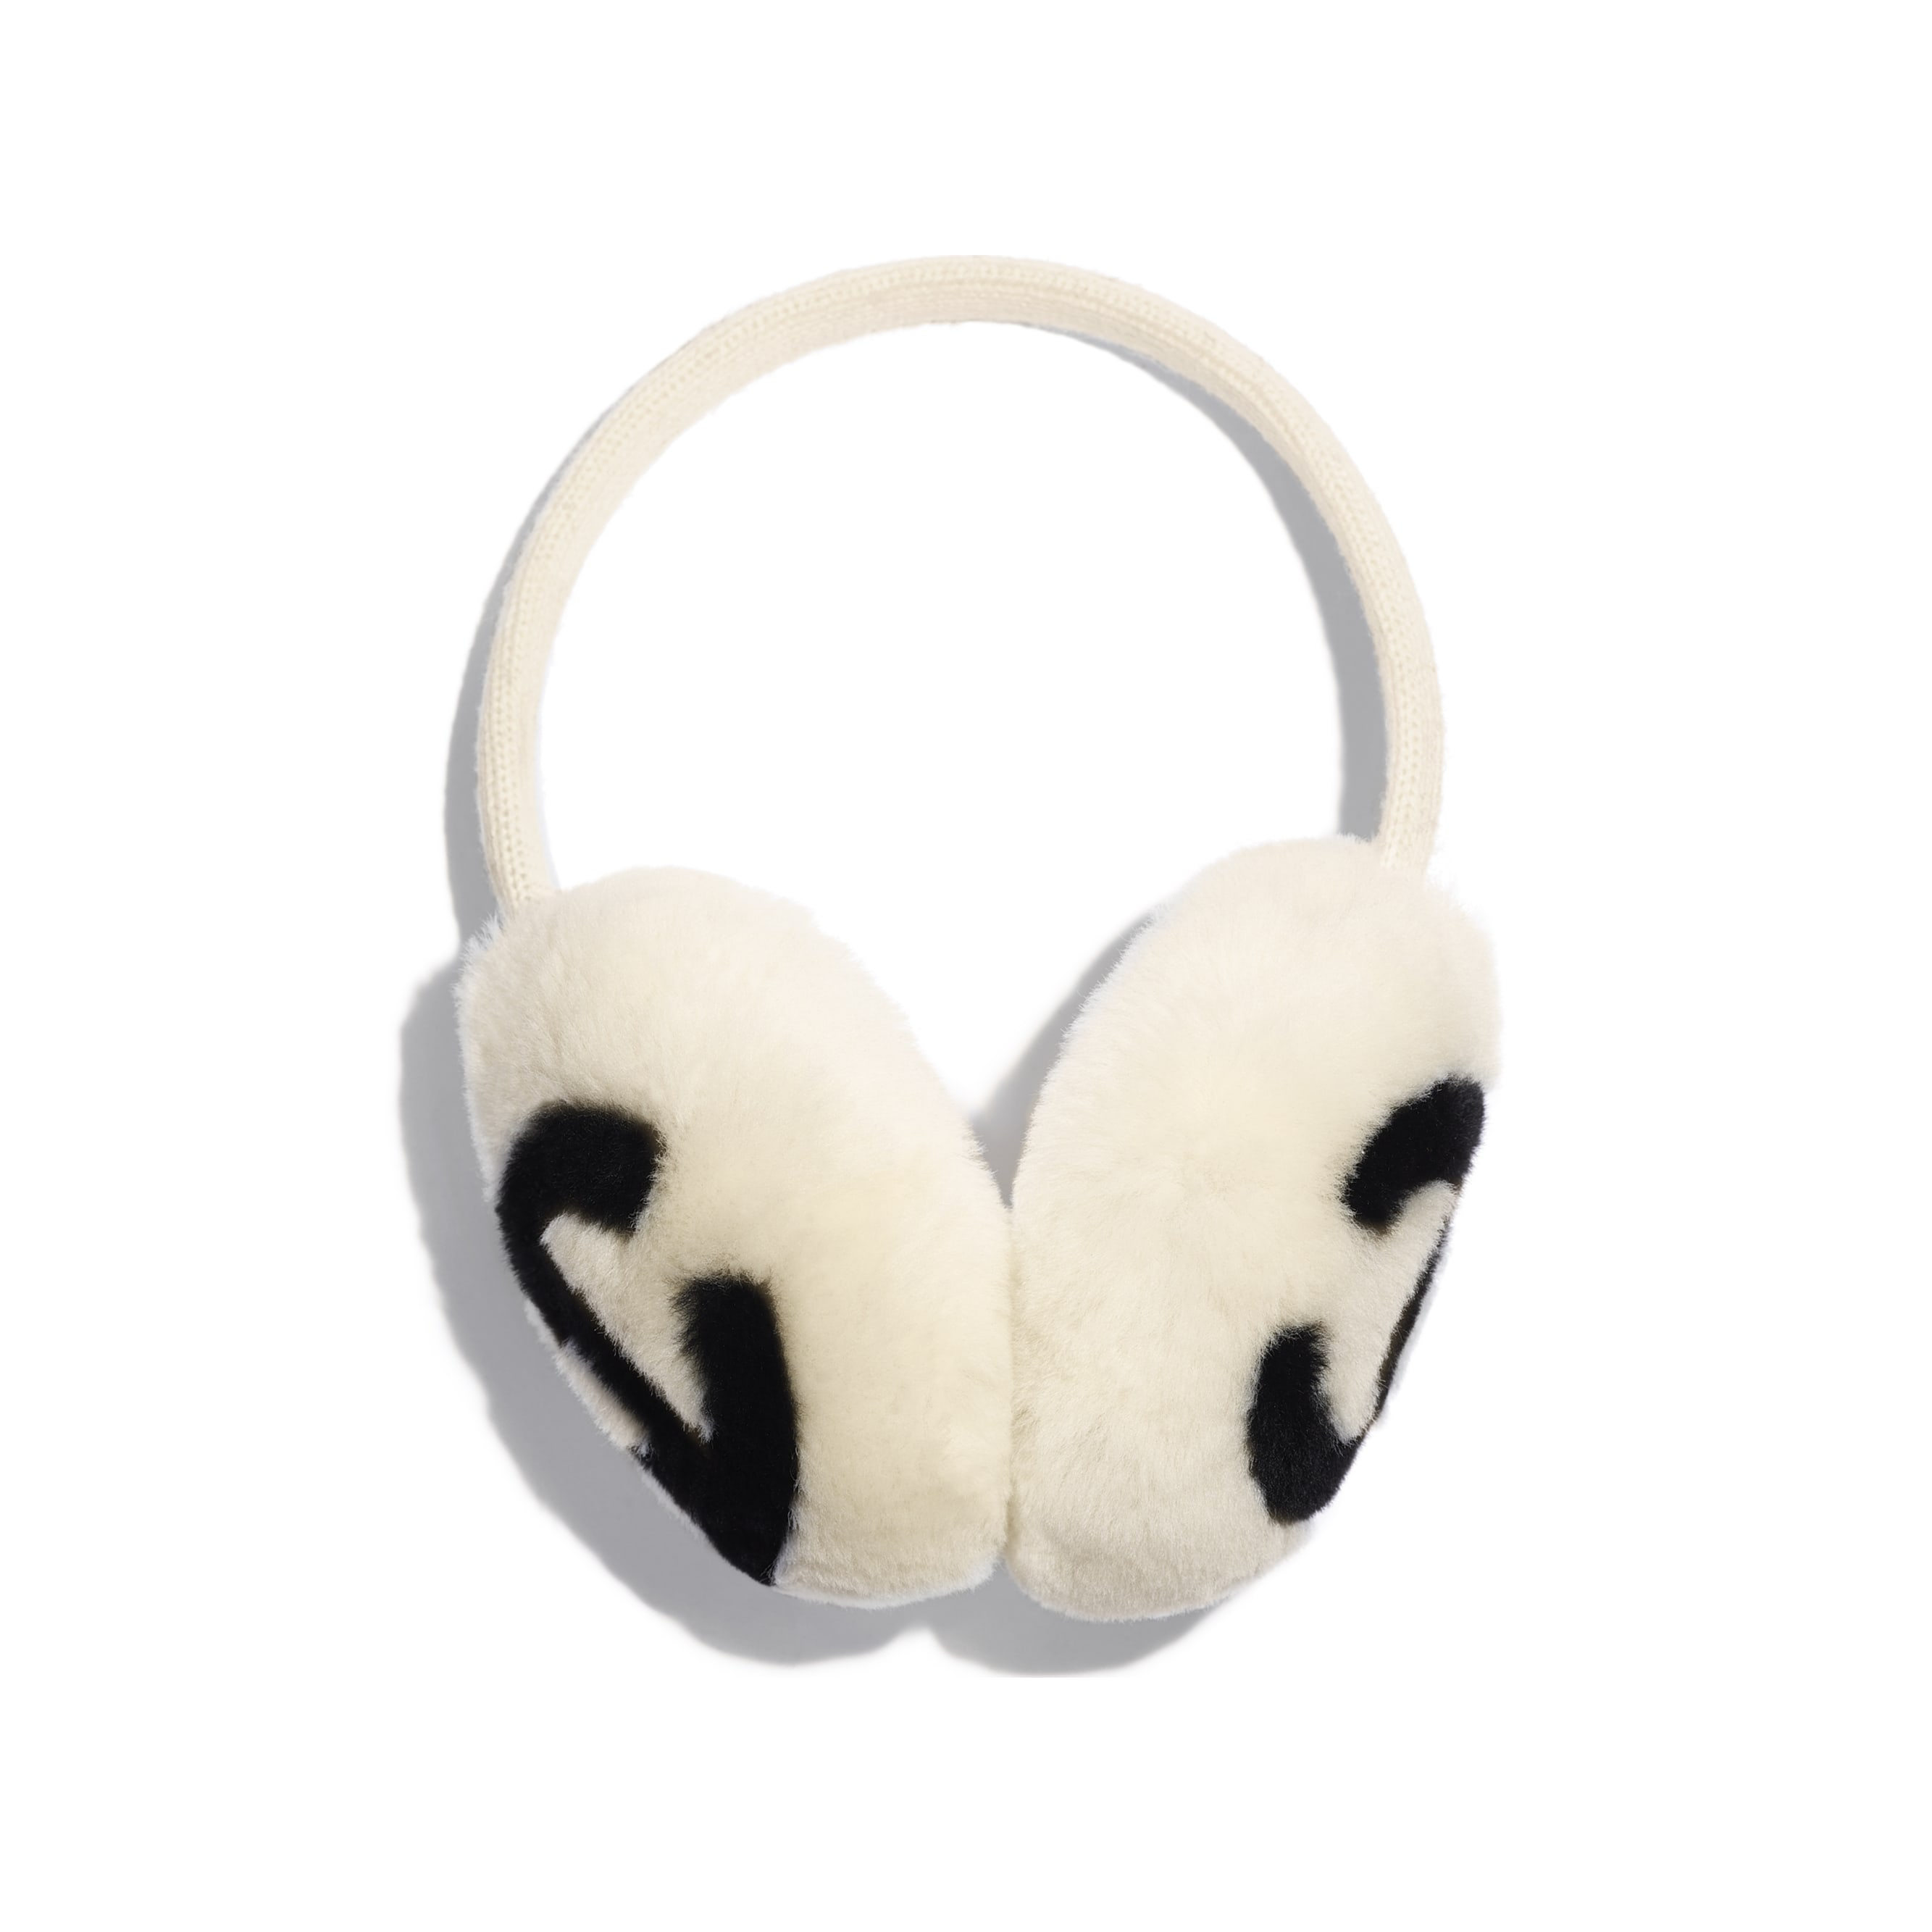 Earmuffs - Ivory & Black - Shearling & Cashmere - Alternative view - see standard sized version